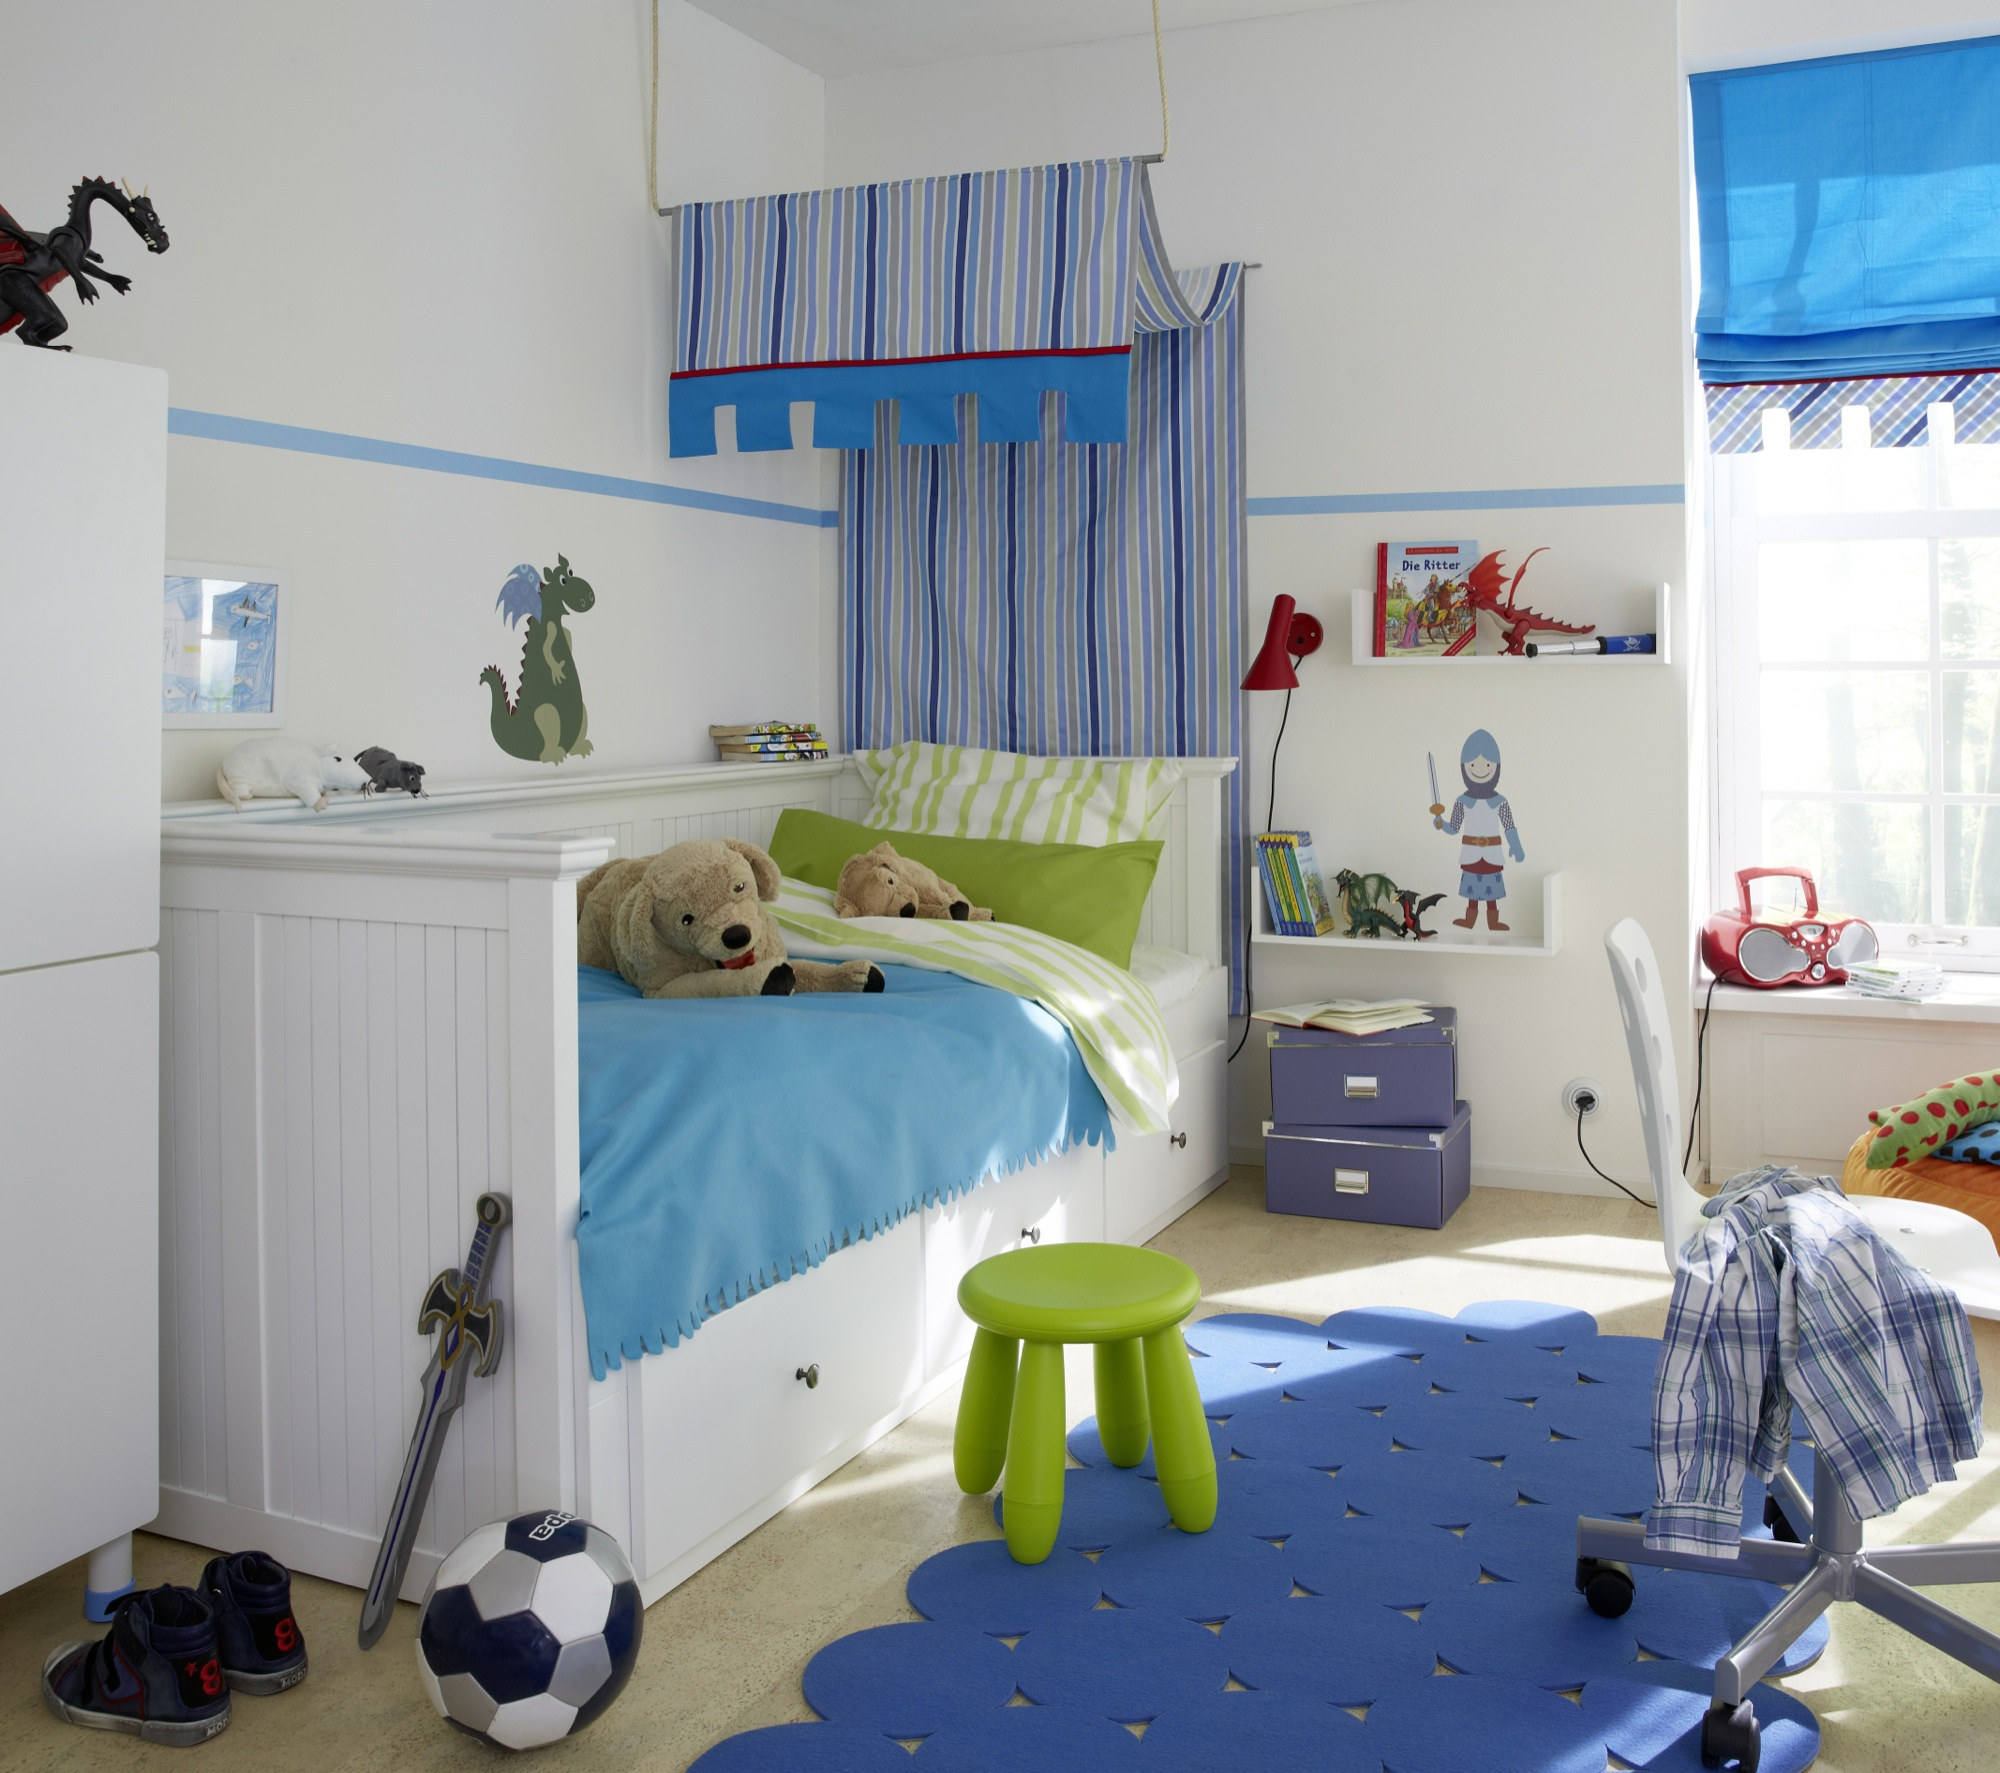 1000 bilder zu kinderzimmer auf pinterest. Black Bedroom Furniture Sets. Home Design Ideas